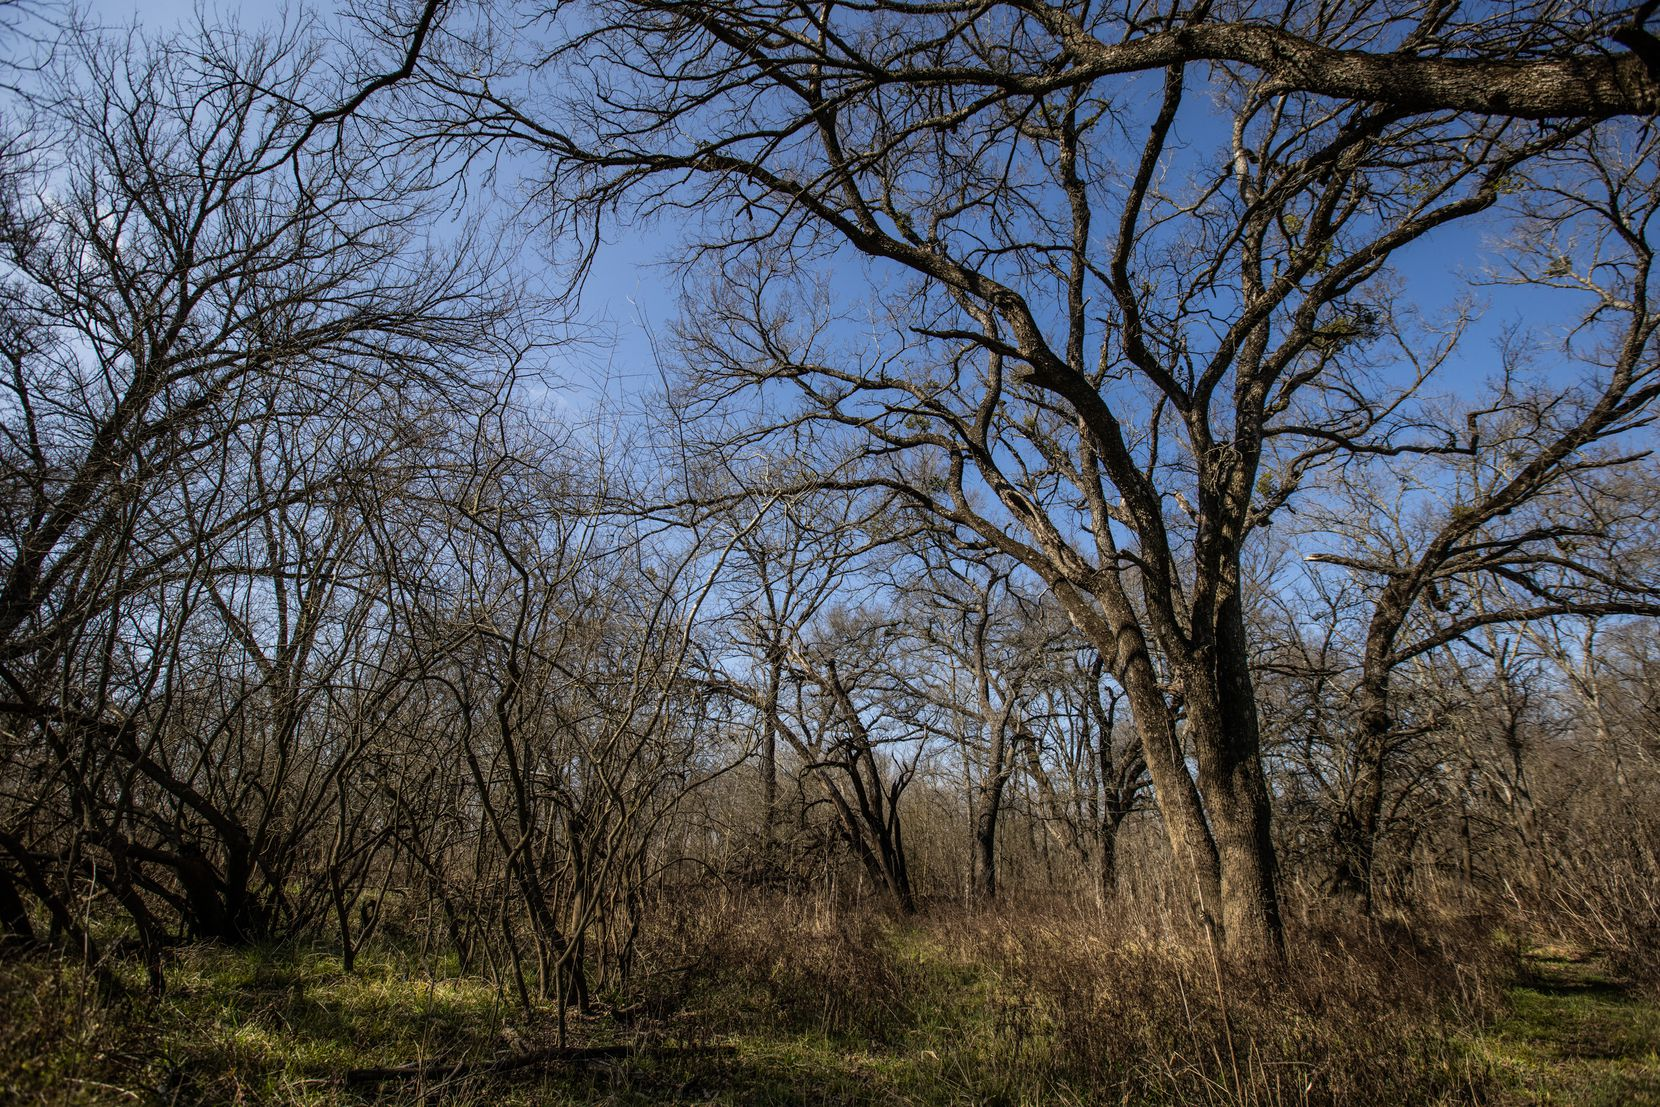 Some areas of the Great Trinity Forest, such as this one, are unchanged from hundreds of years ago when Native Americans first walked the land.